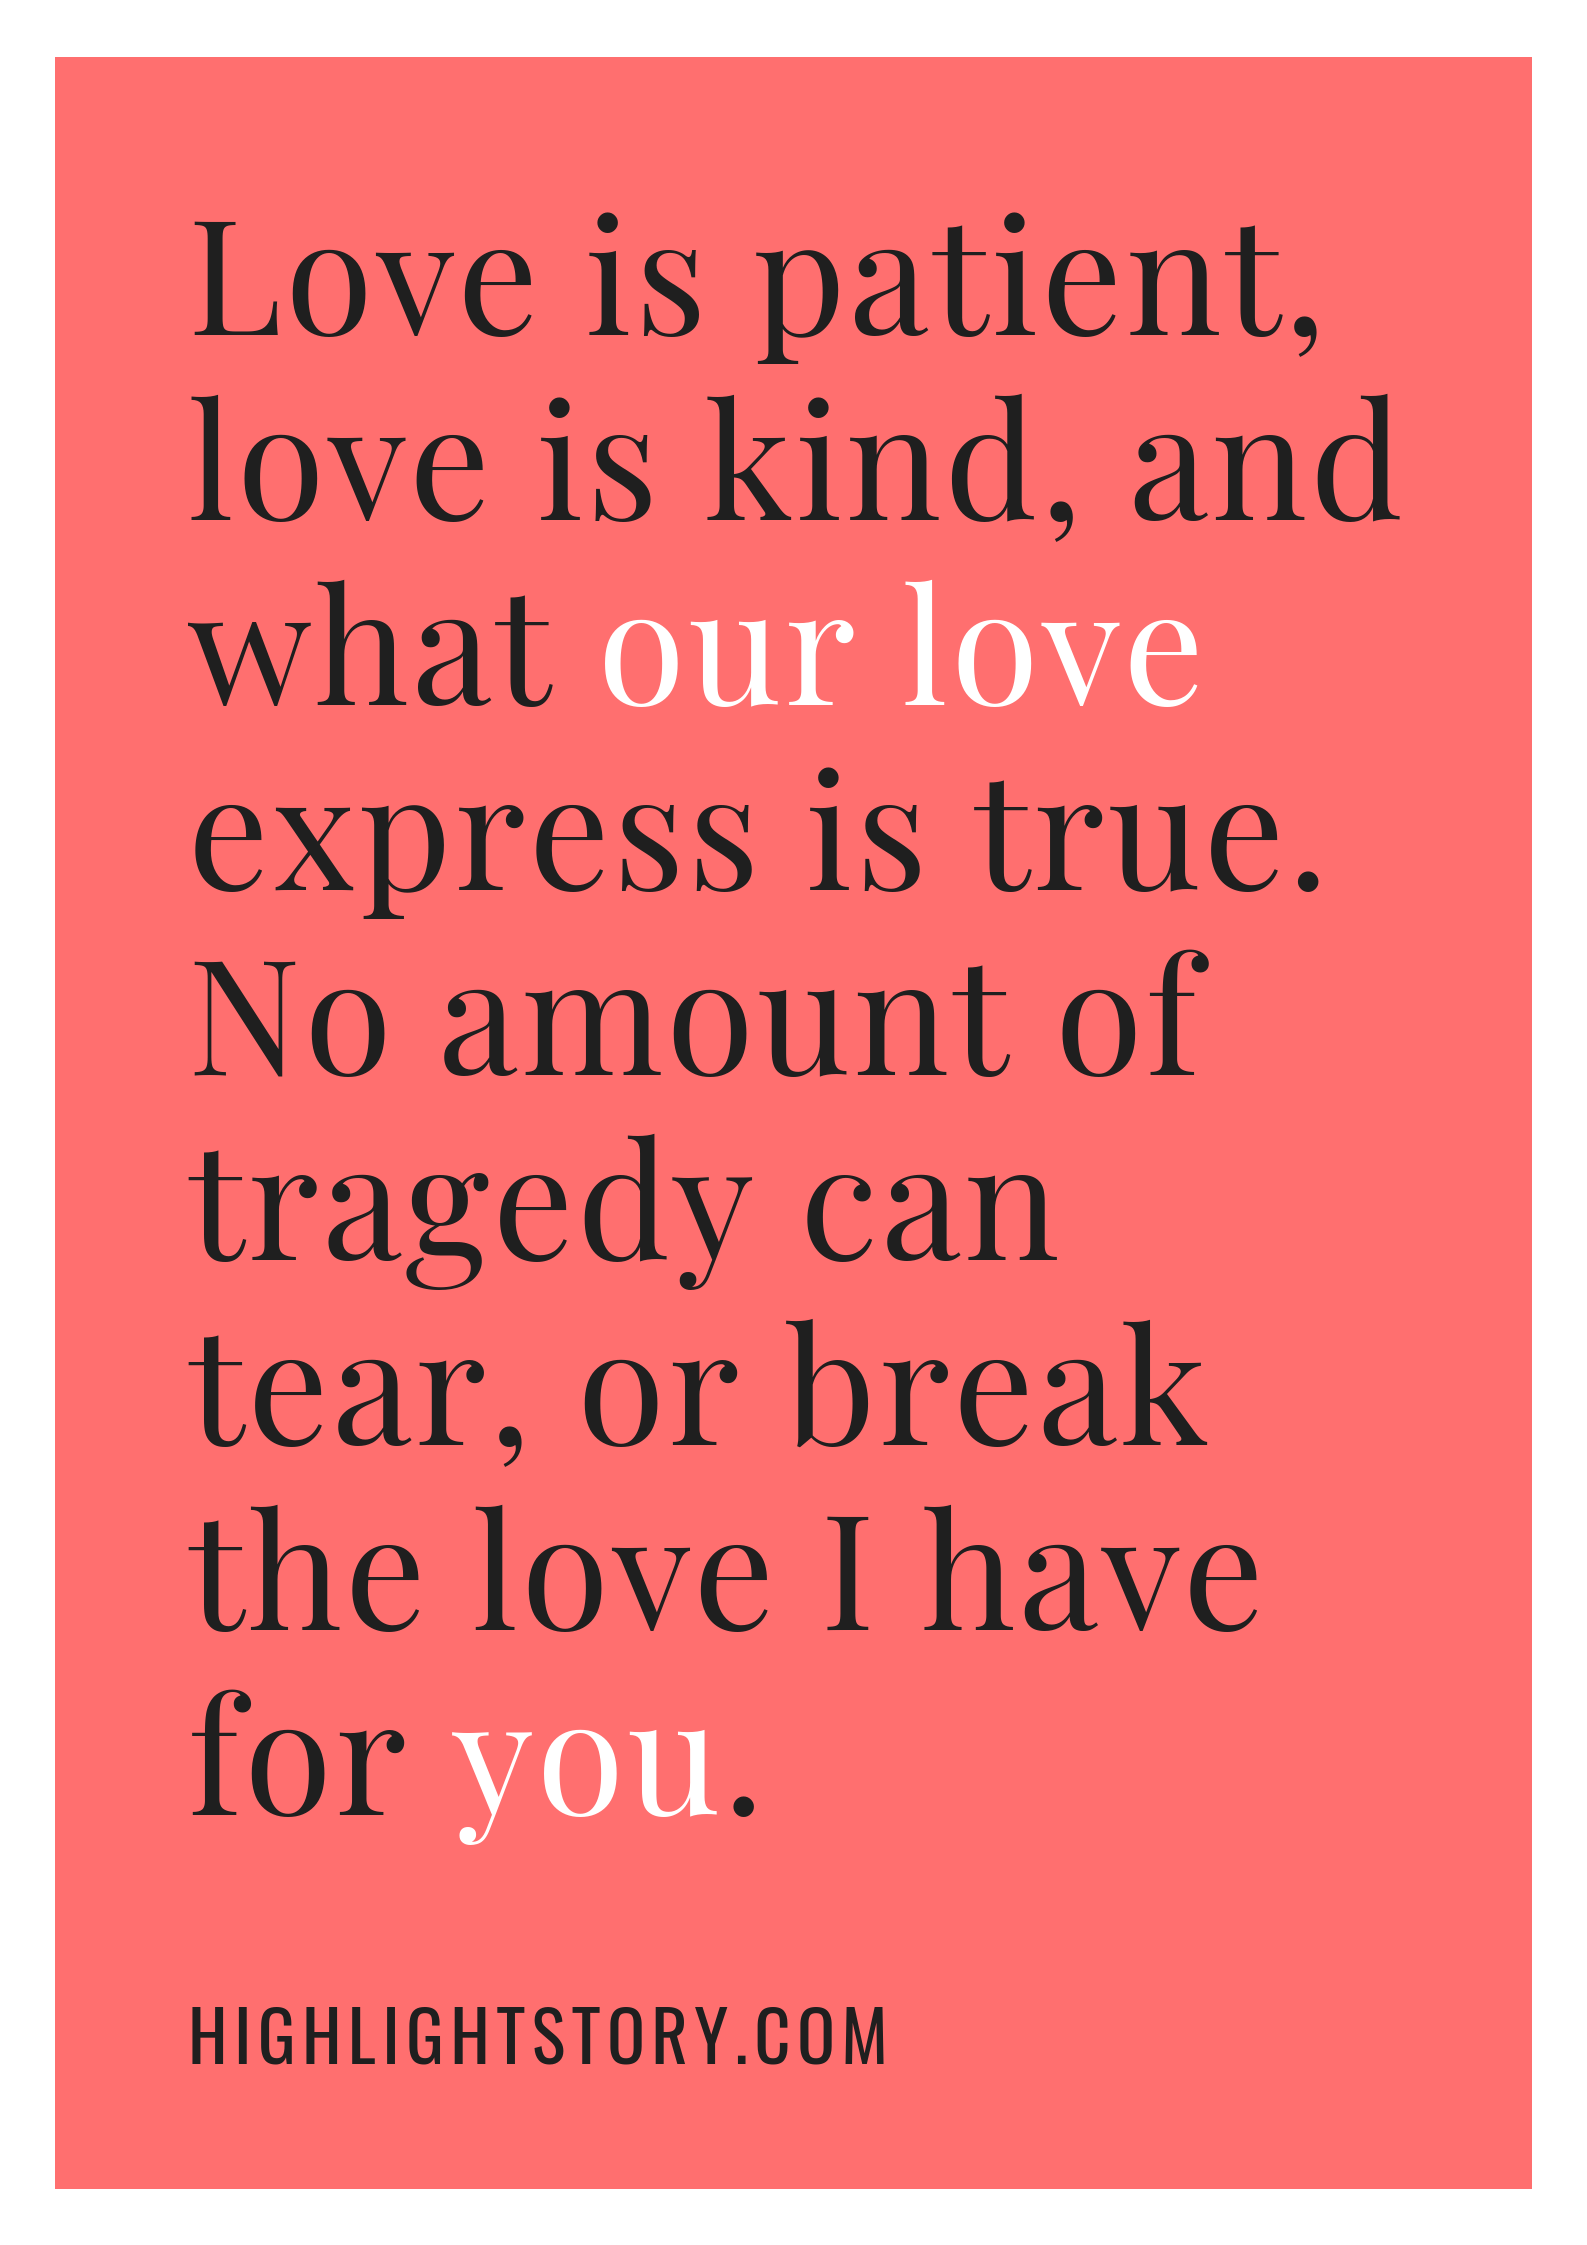 Love is patient, love is kind, and what our love express is true. No amount of tragedy can tear, or break the love I have for you.